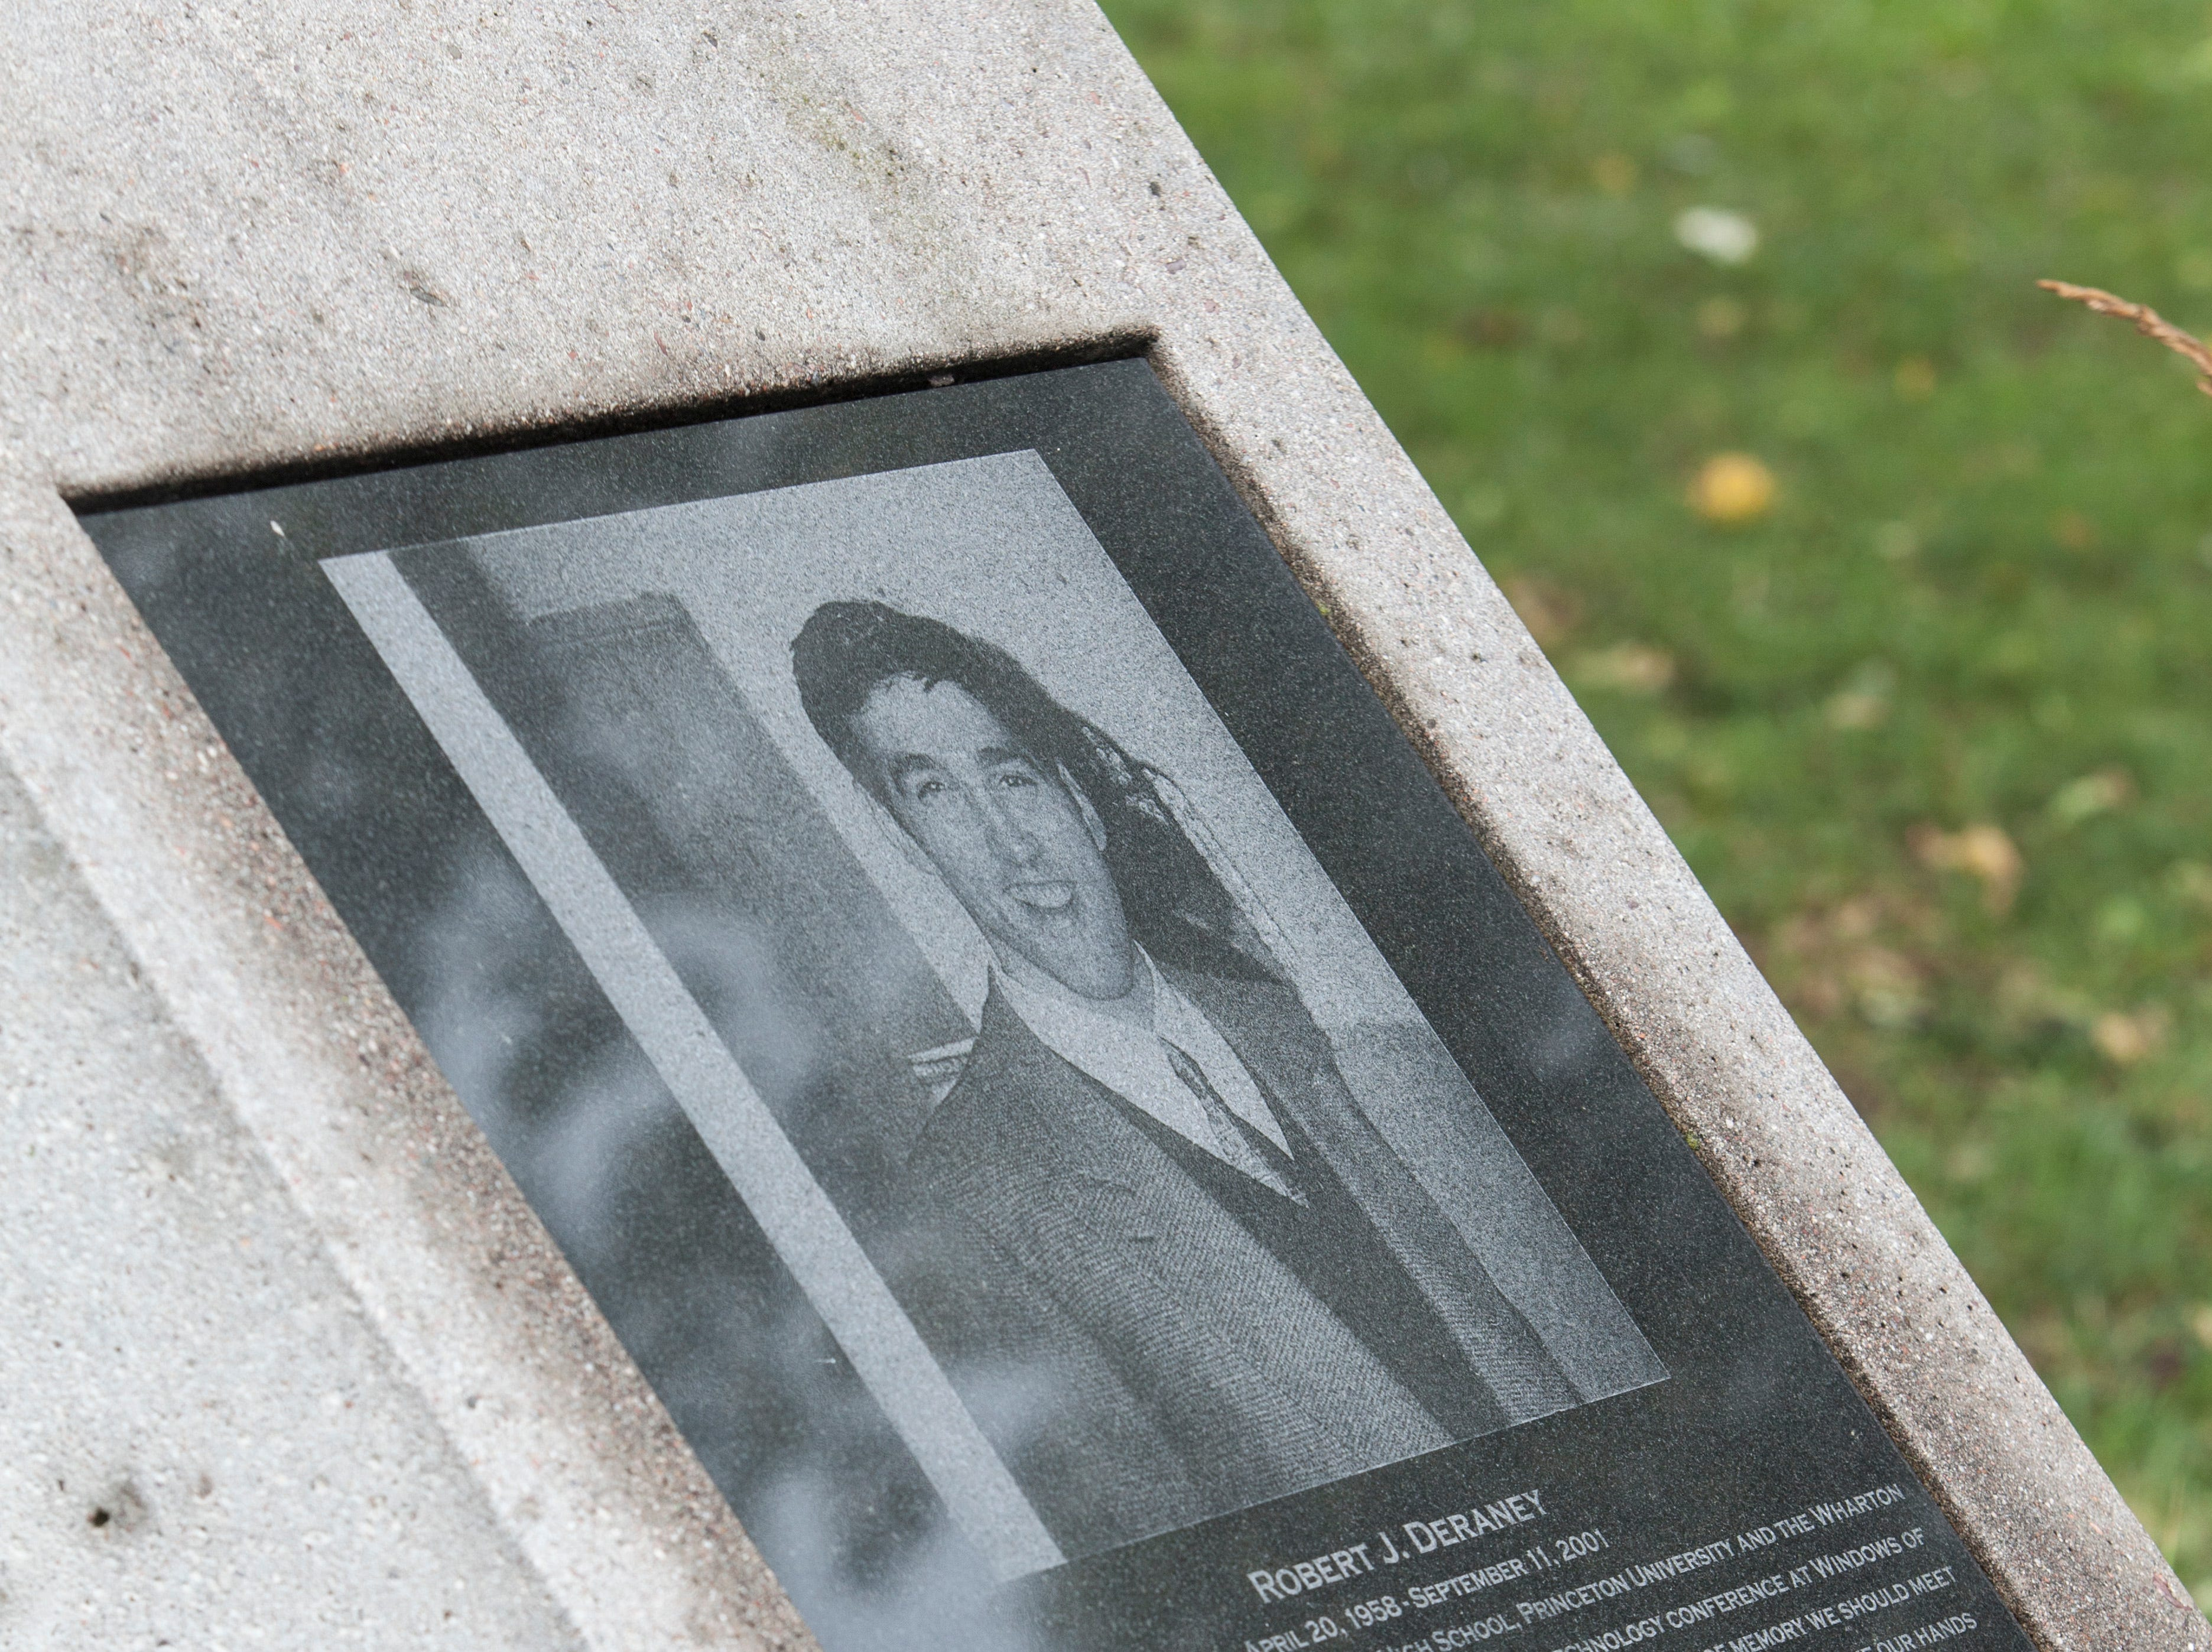 Robert J. Deraney, who is pictured here on a memorial in Wayne.